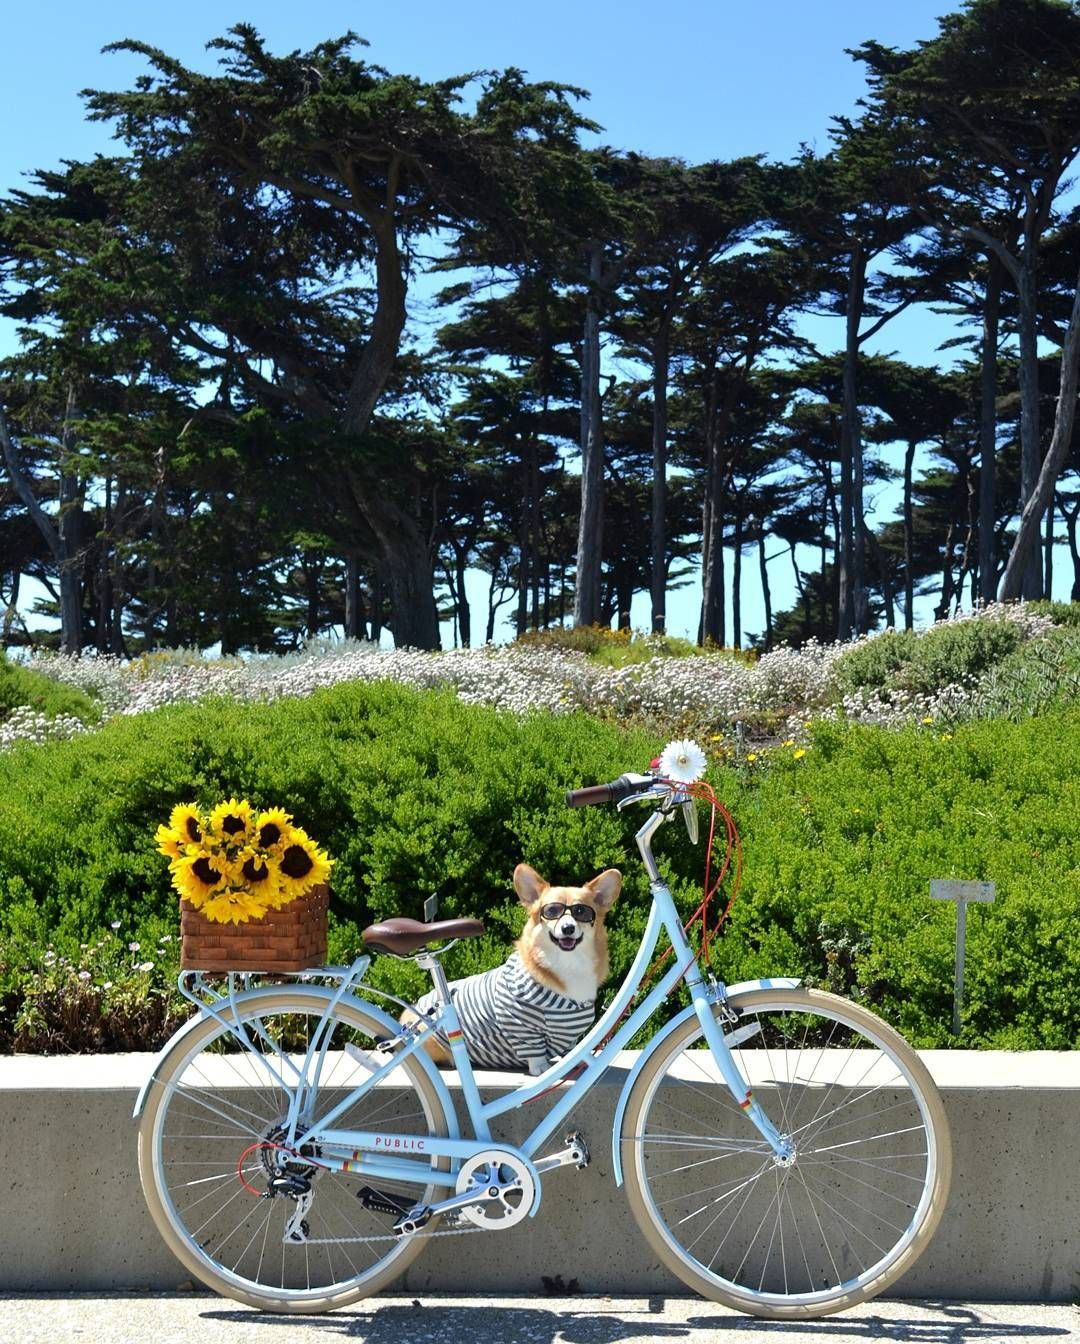 d62d77d5d5eb Summer chic for your bike and your puppy! RG  publicbikes